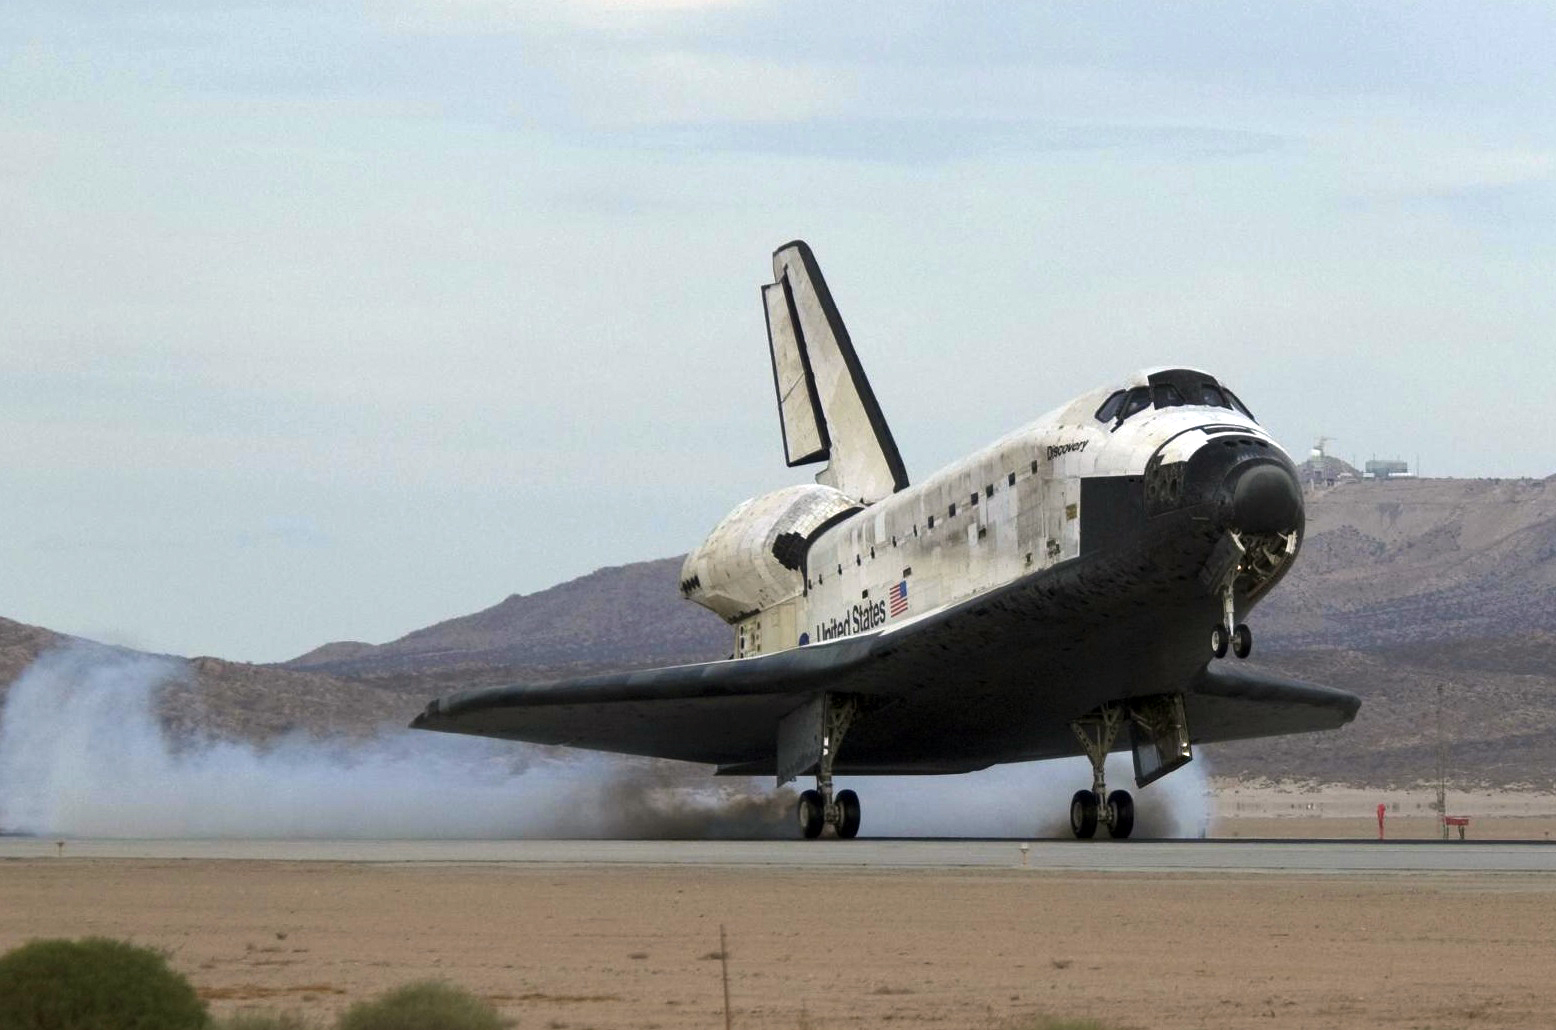 worst space shuttle landing - photo #22